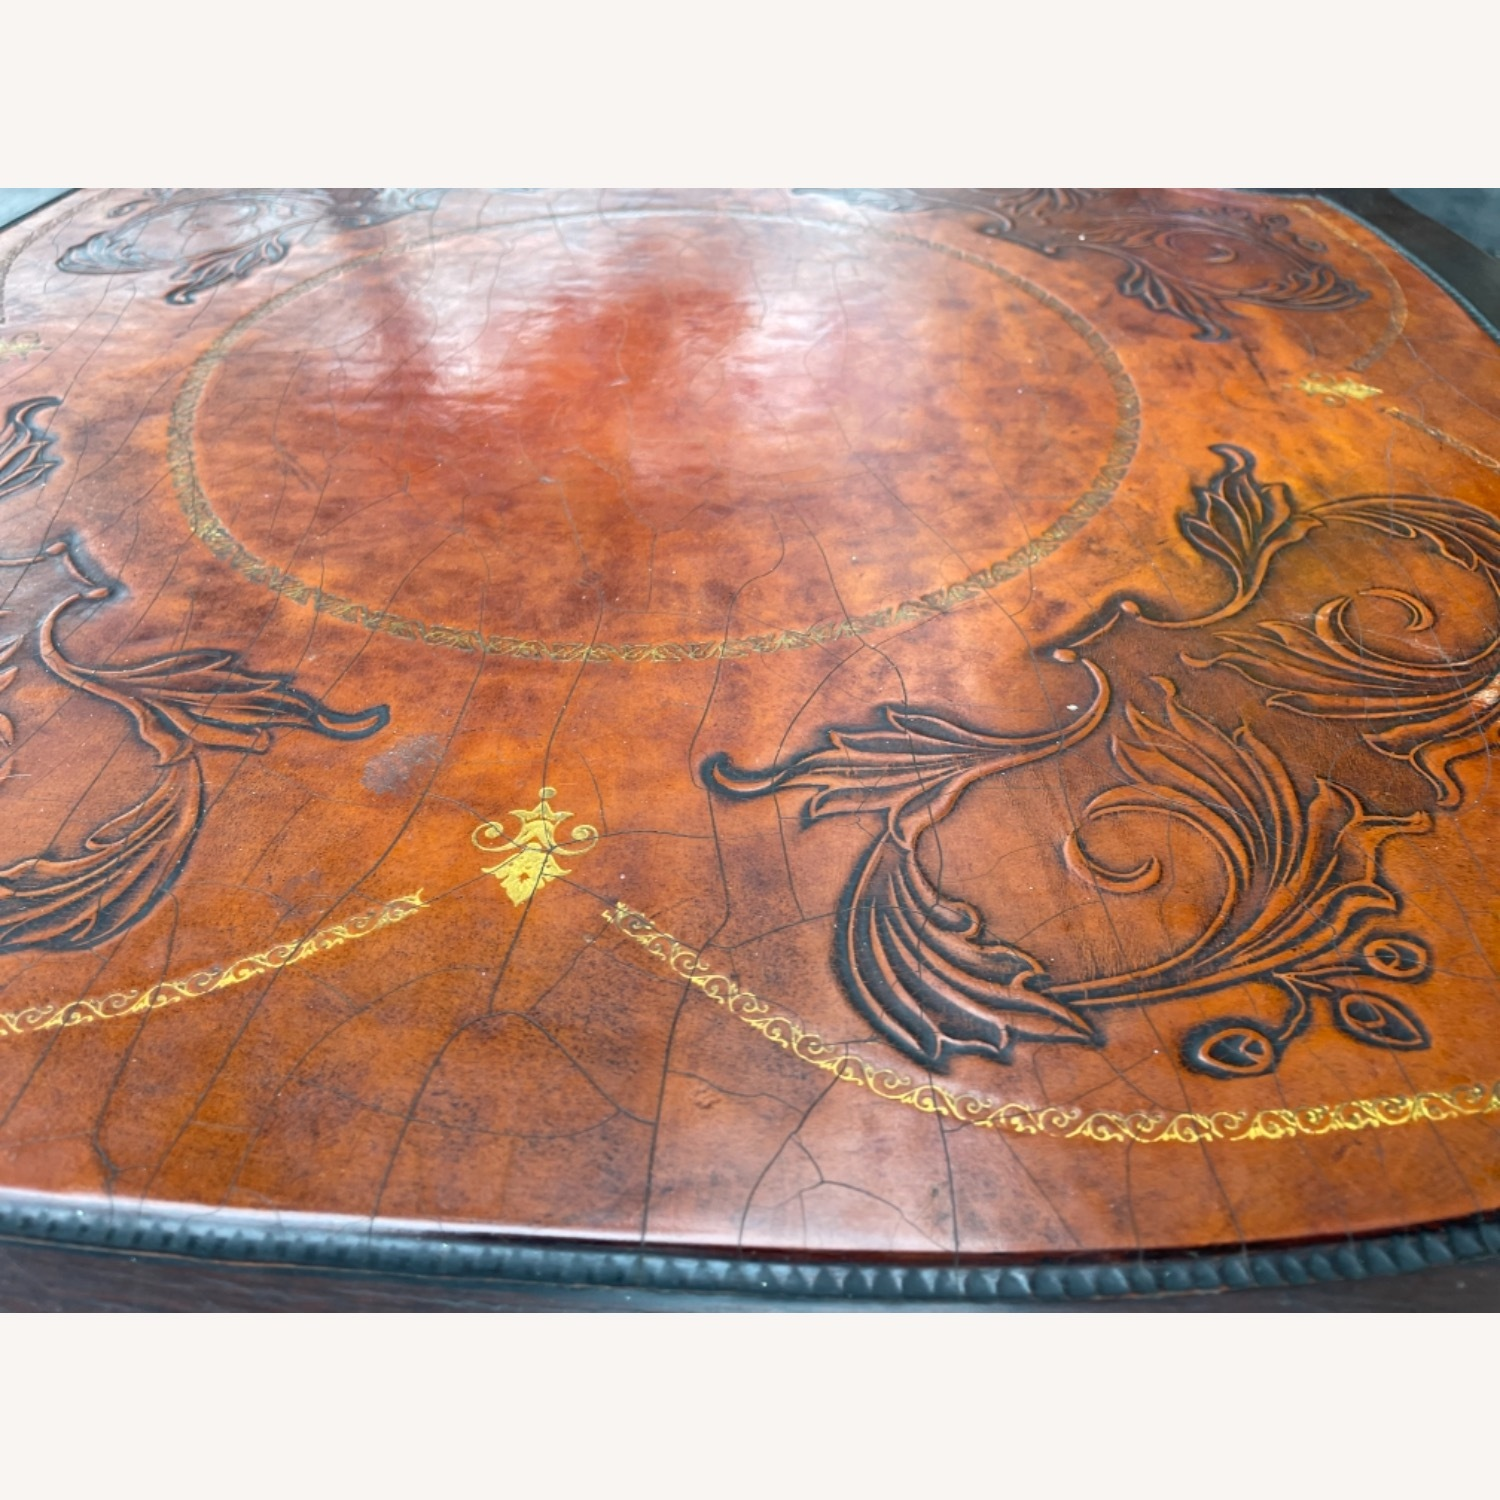 Adams Always 1930s Decorative Leather Top Table - image-21